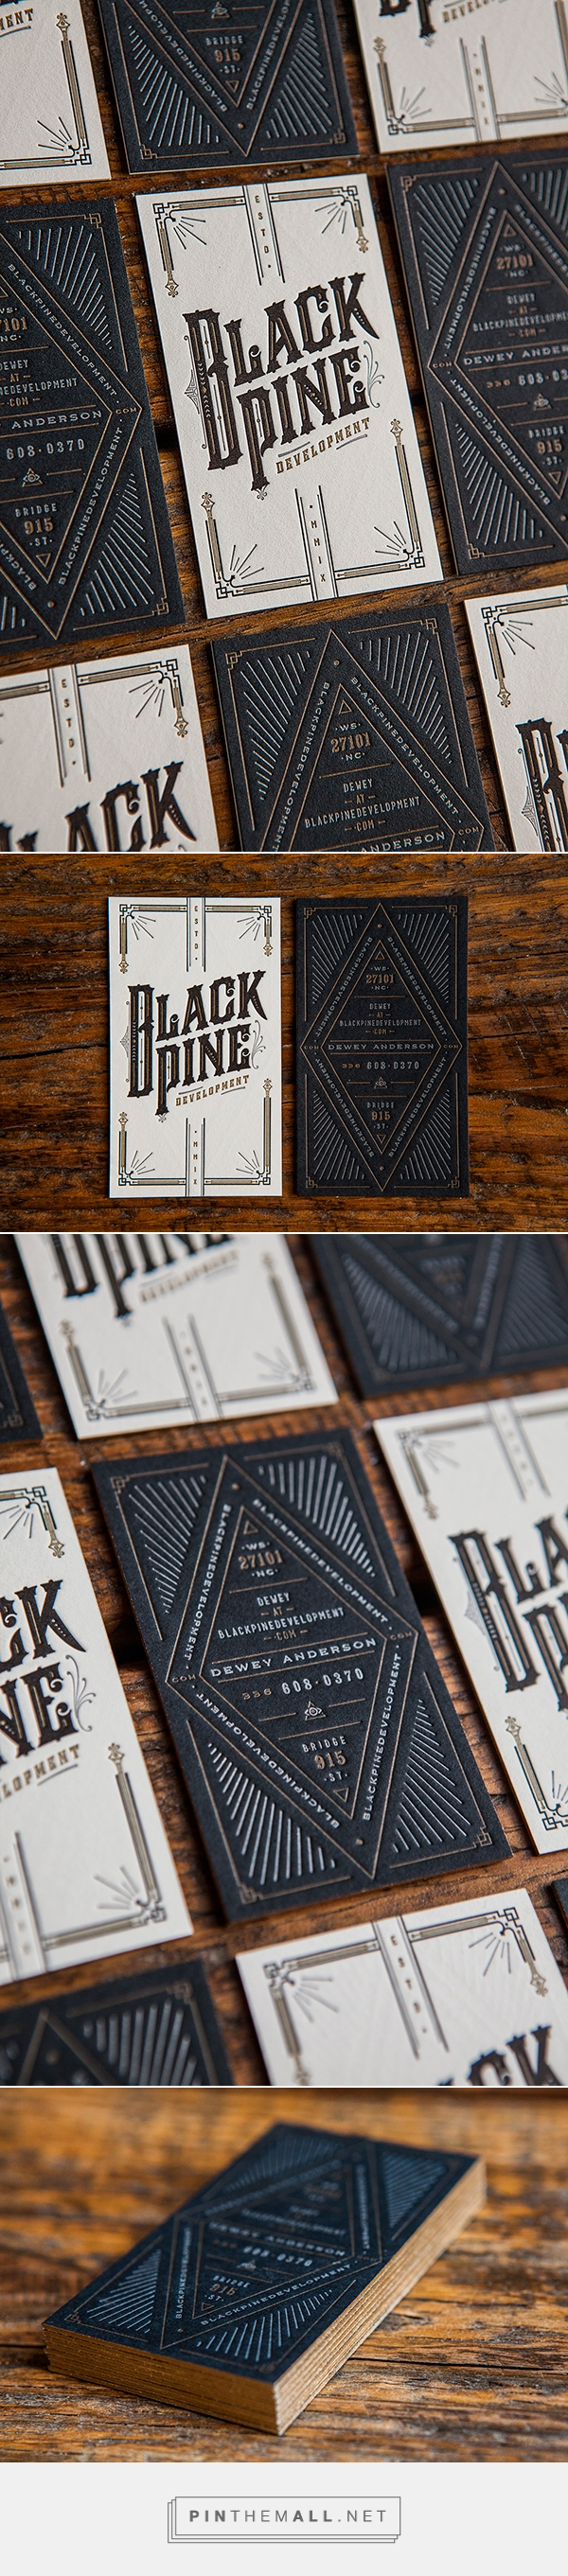 BlackPine Development Business Card Design by Device Creative Collaborative